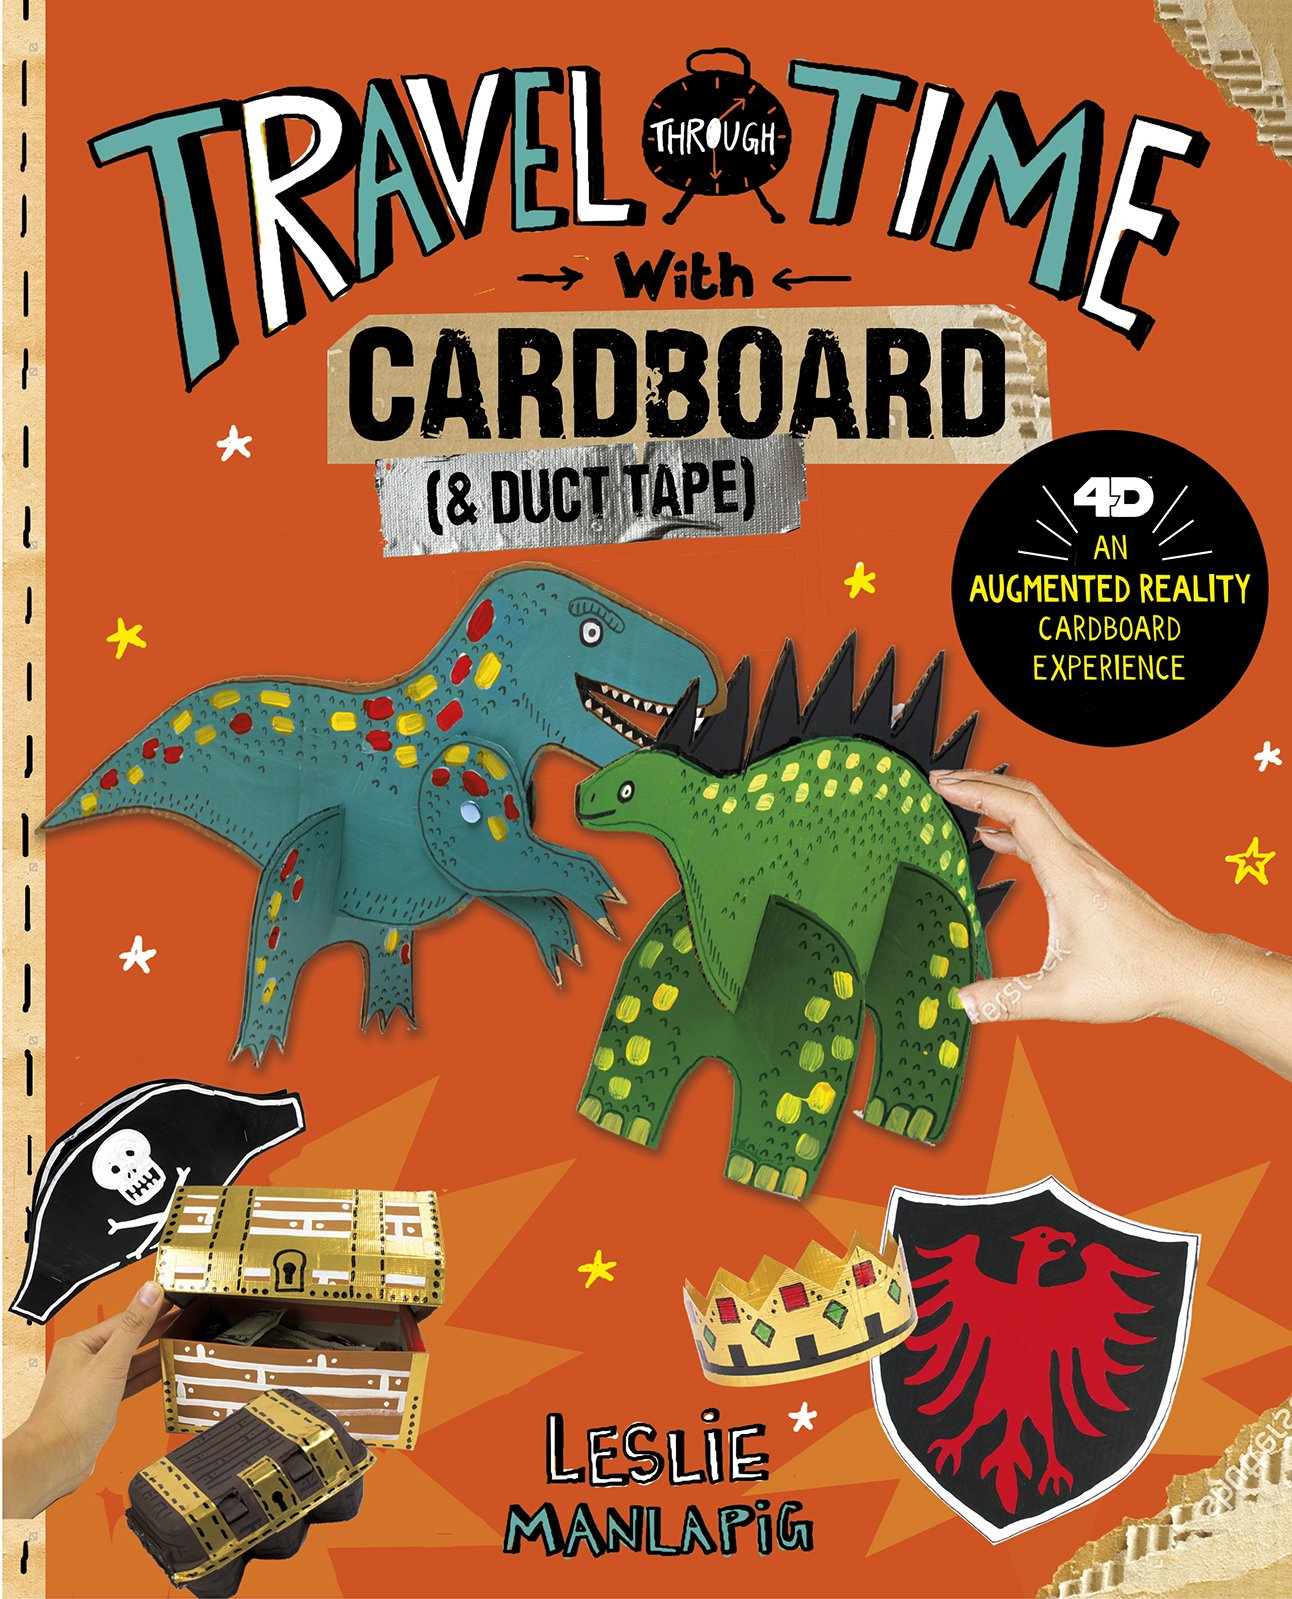 Travel Through Time with Cardboard and Duct Tape: 4D An Augmented Reading Cardboard Experience (Epic Cardboard Adventures 4D)